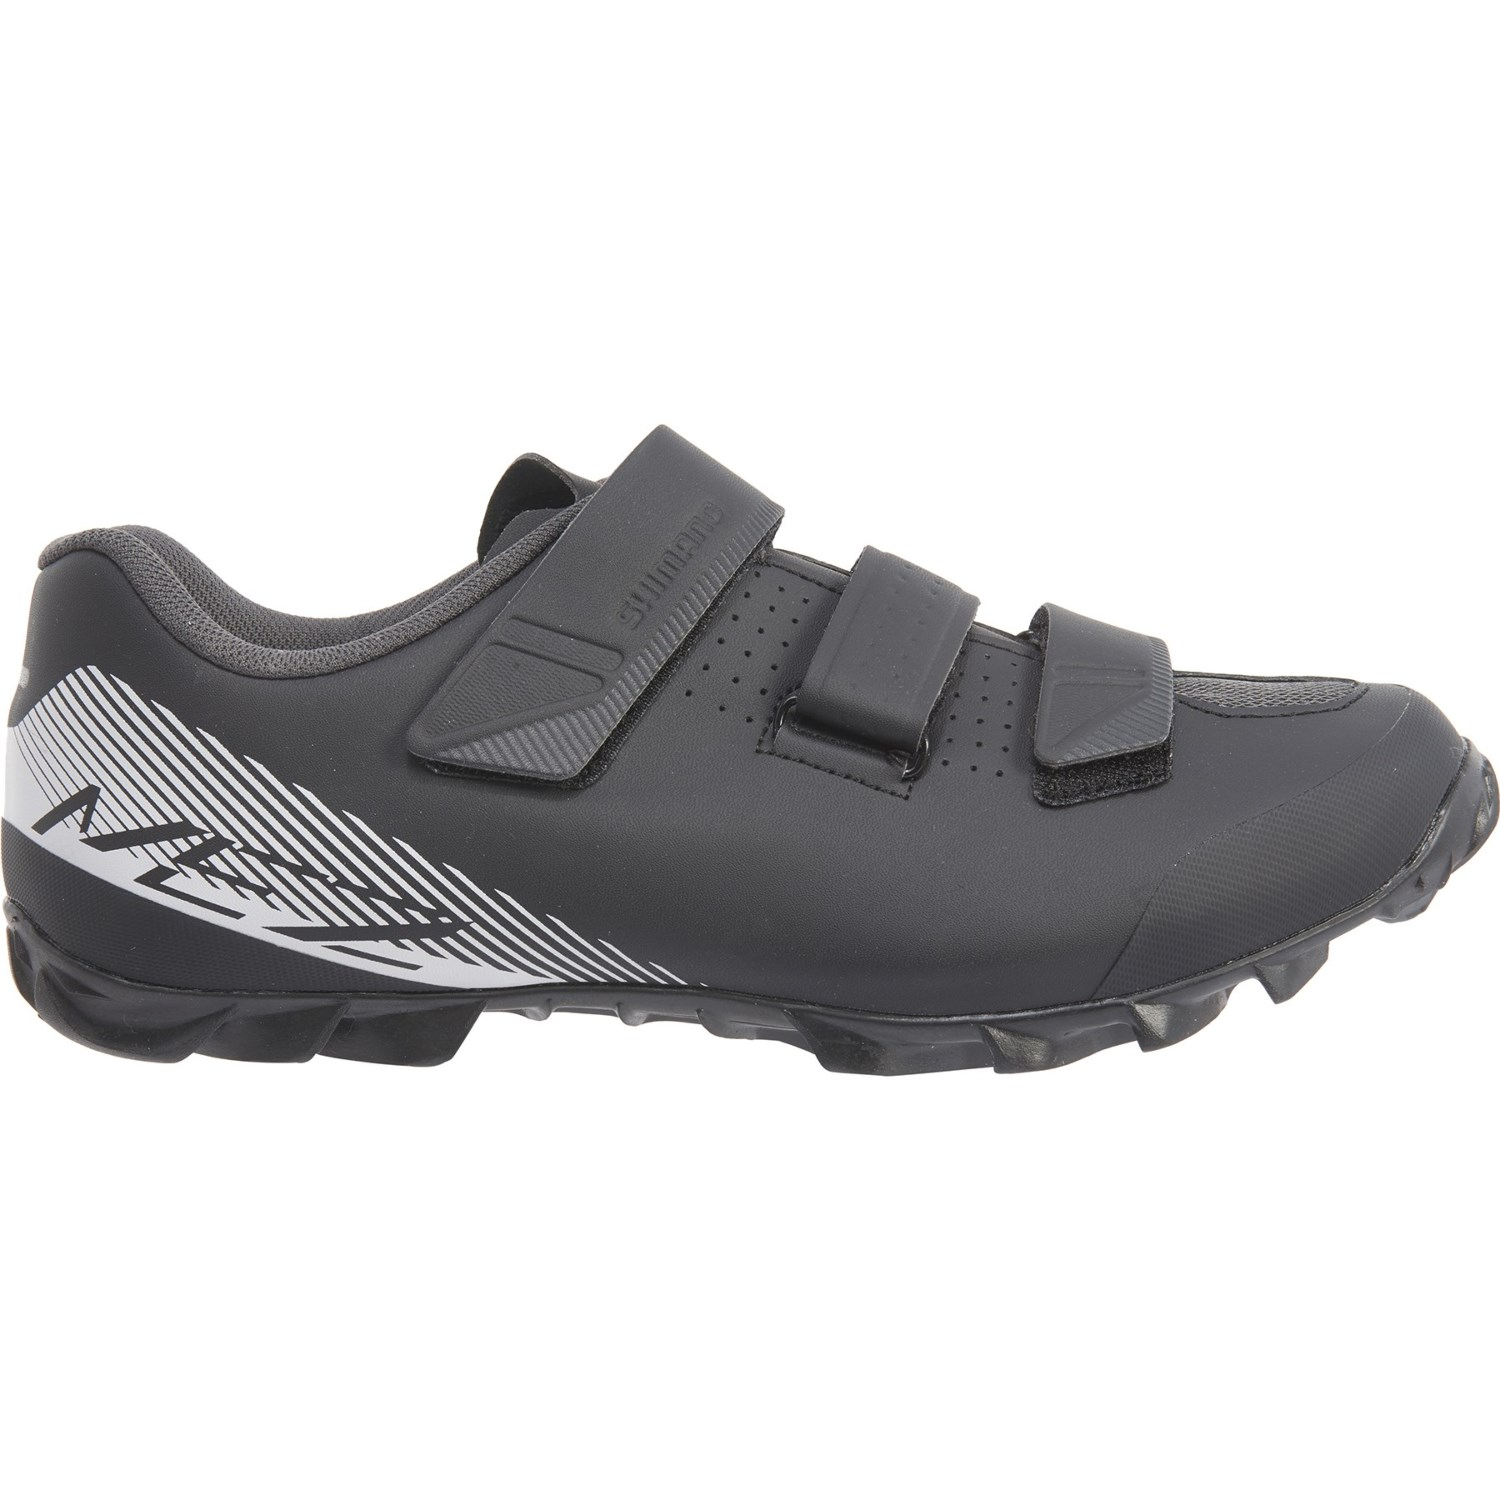 d77707d6824 Shimano SH-ME2 Mountain Bike Shoes (For Men) - Save 44%